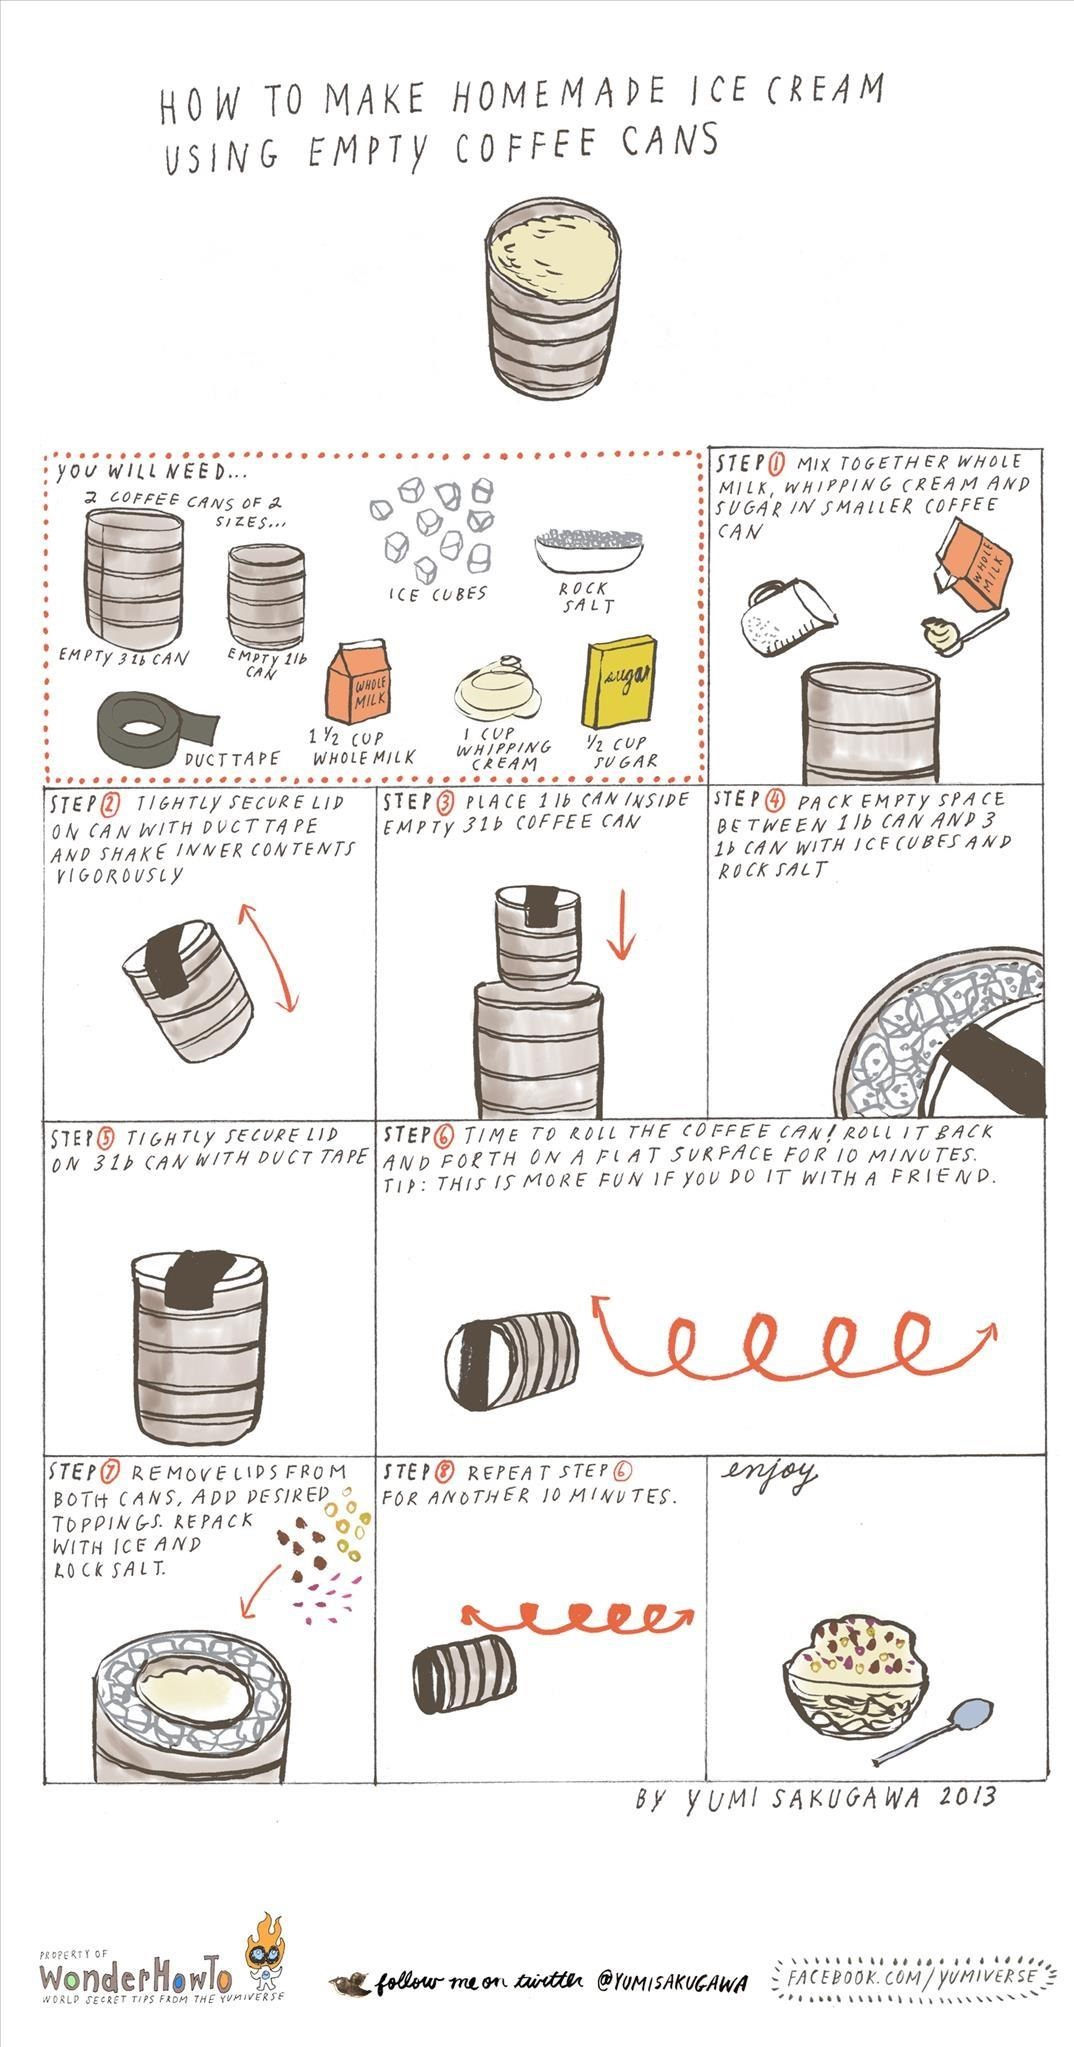 How to make homemade ice cream with coffee cans. - photo#27